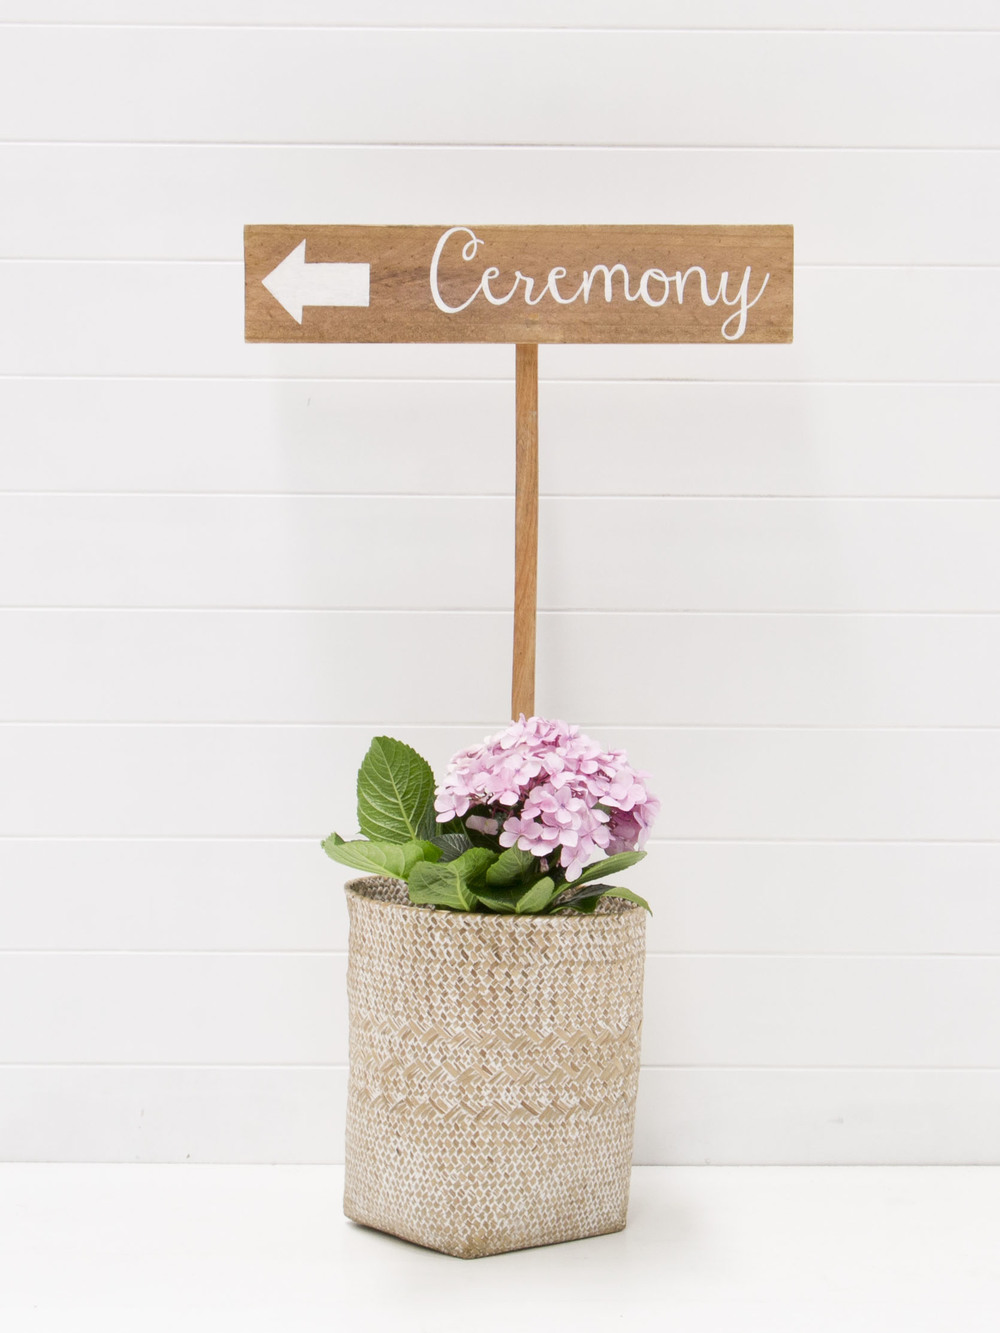 Ceremony wooden sign.jpg